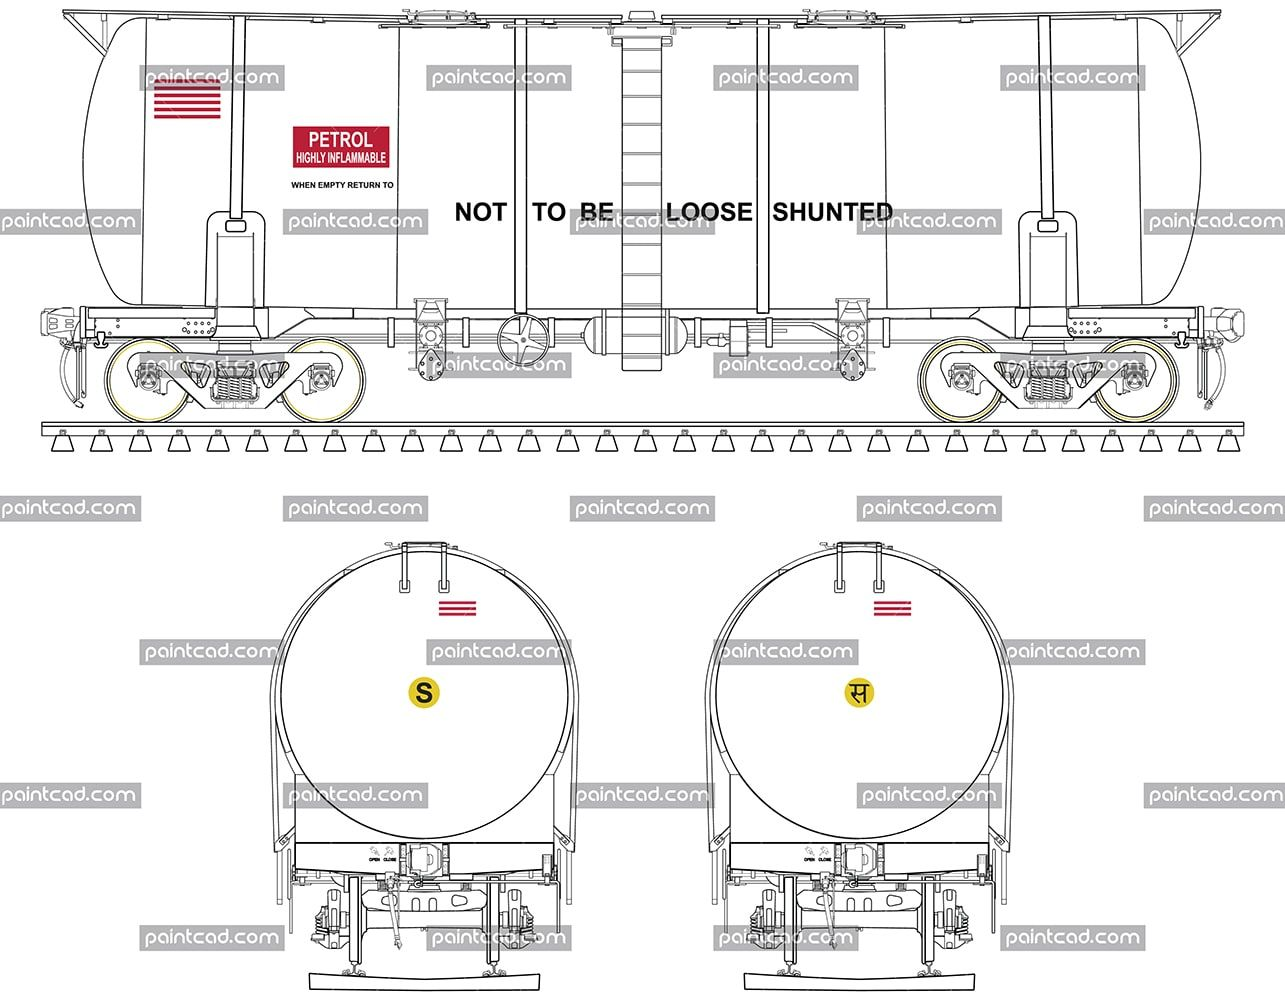 Drawing Of Btfln Tank Wagon For Transport Of Petrol